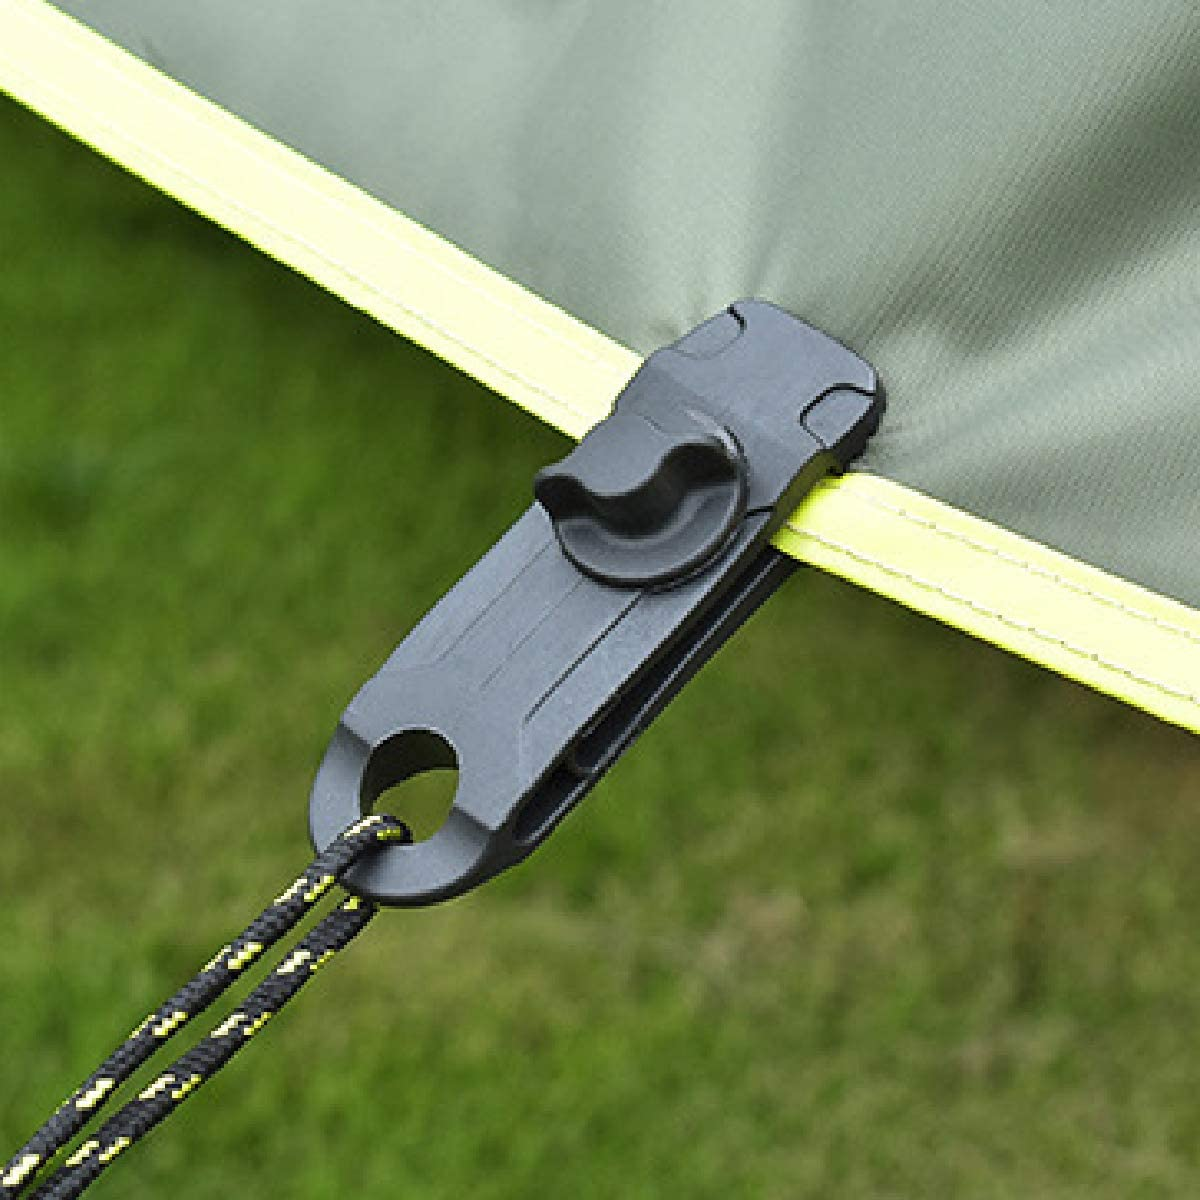 Azarxis 10 Pack Tarp Clips Awning Clamp Set Heavy Duty /& Multi-Purpose /& Thumb Screw Tent Tighten Lock Grip for Outdoors Camping Farming Garden Canopy